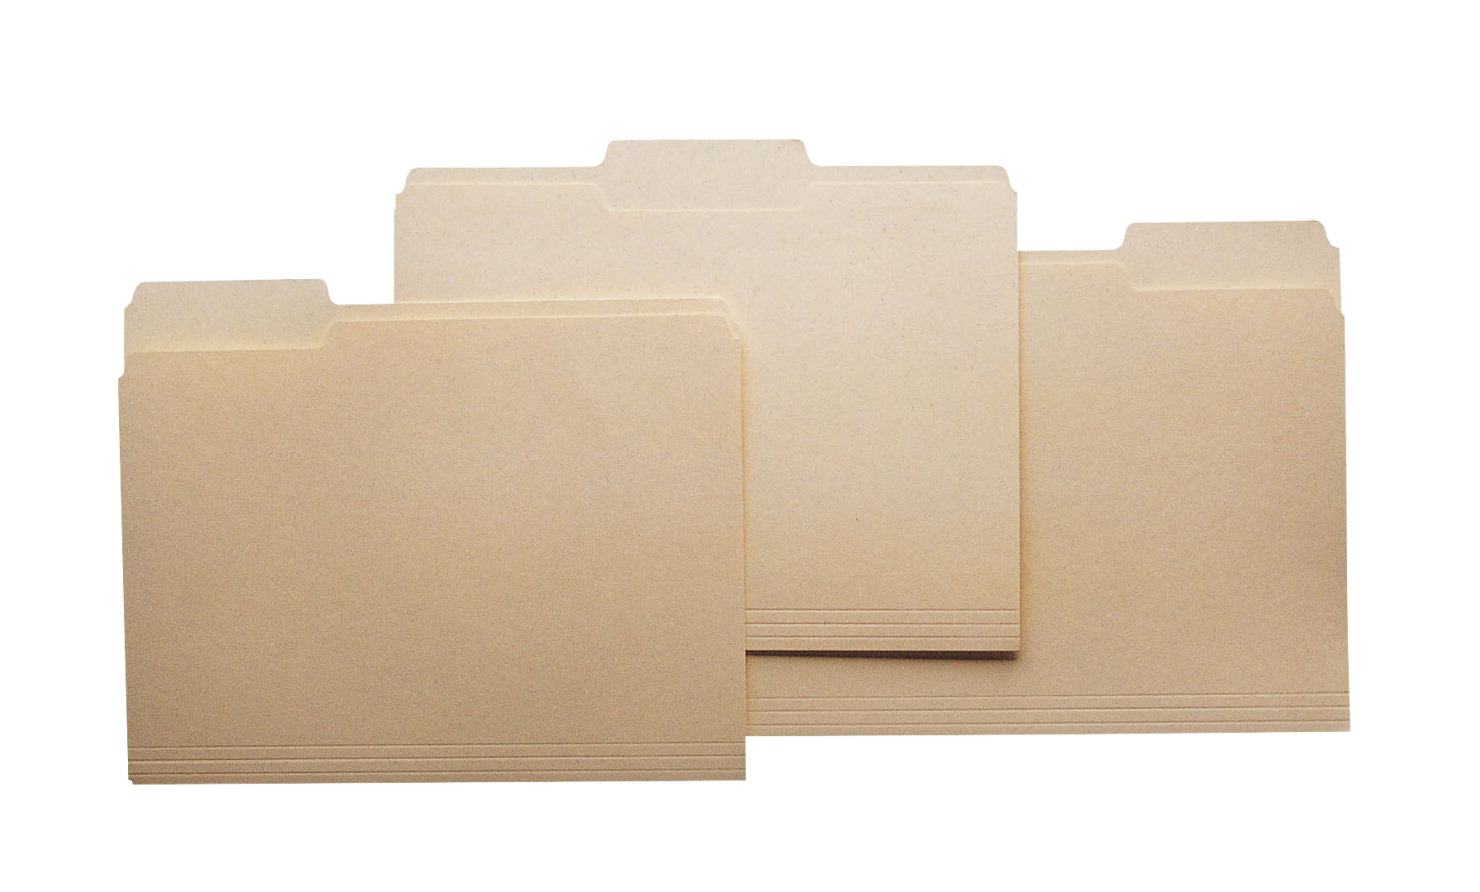 School Smart 1/3 Cut Manila File Folder, Letter, 11-3/4 L x 9-1/2 W in, 3/4 in Expansion, Mediumweight, Pack of 100